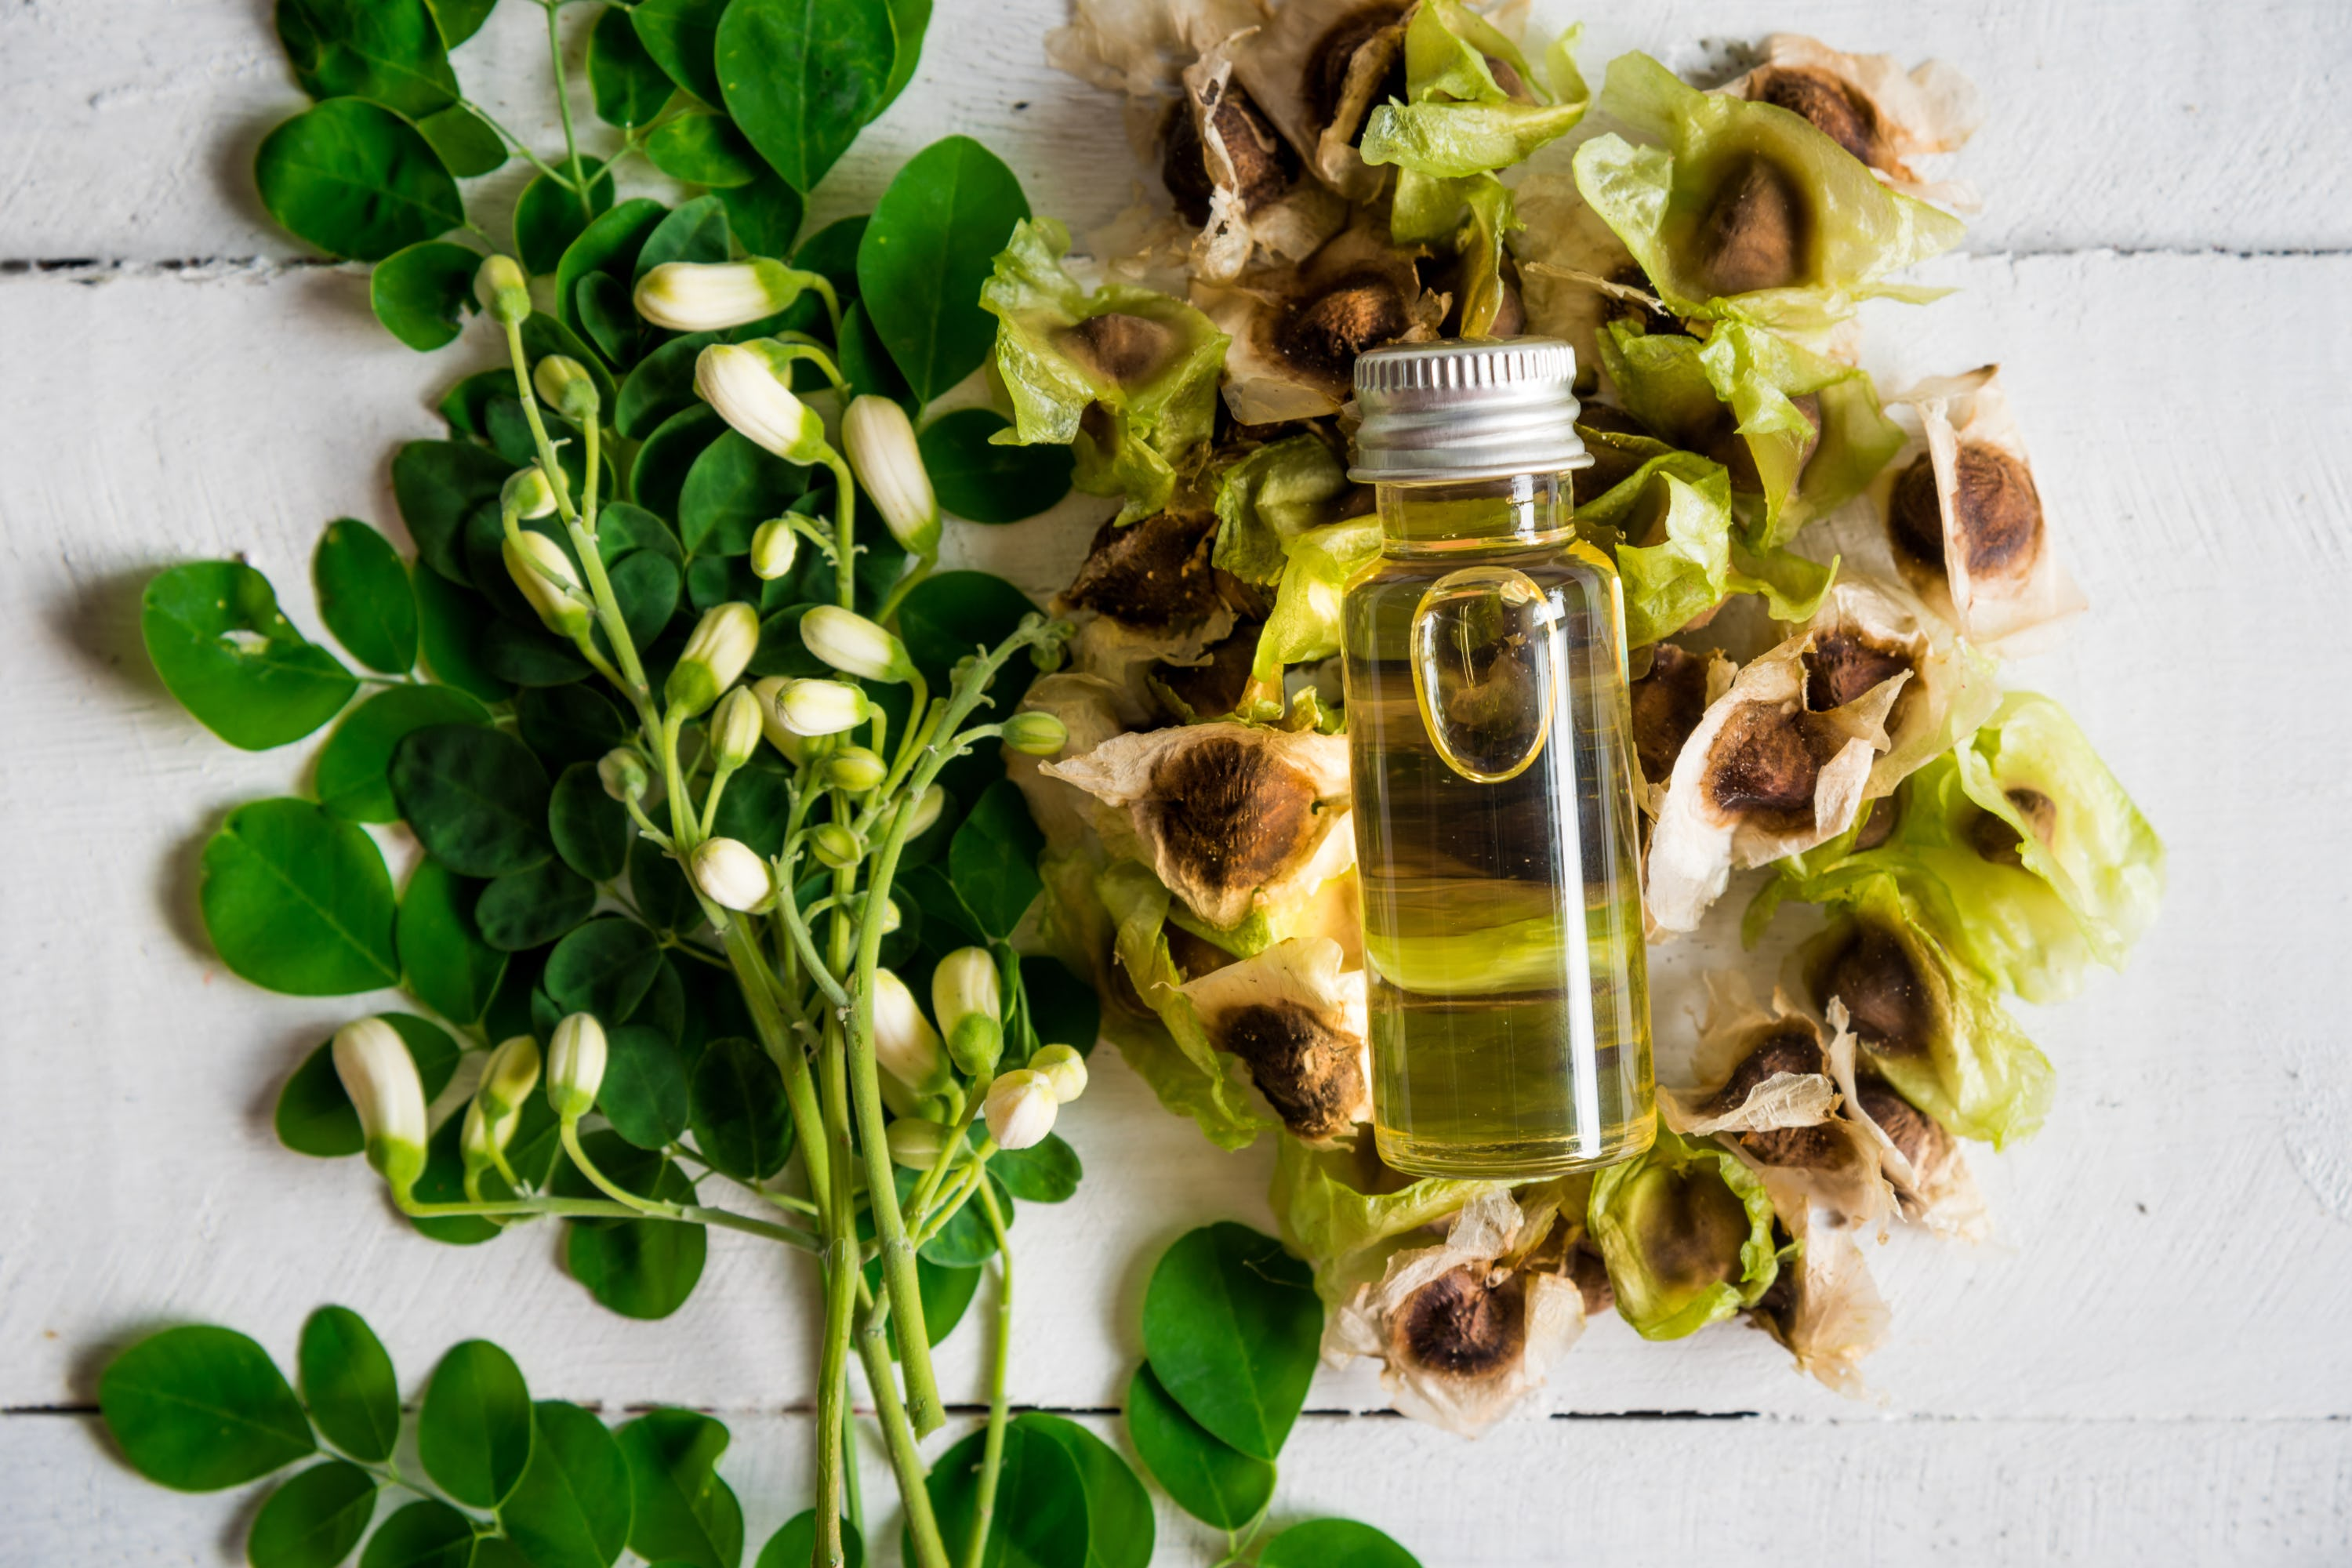 Moringa Oil and seeds